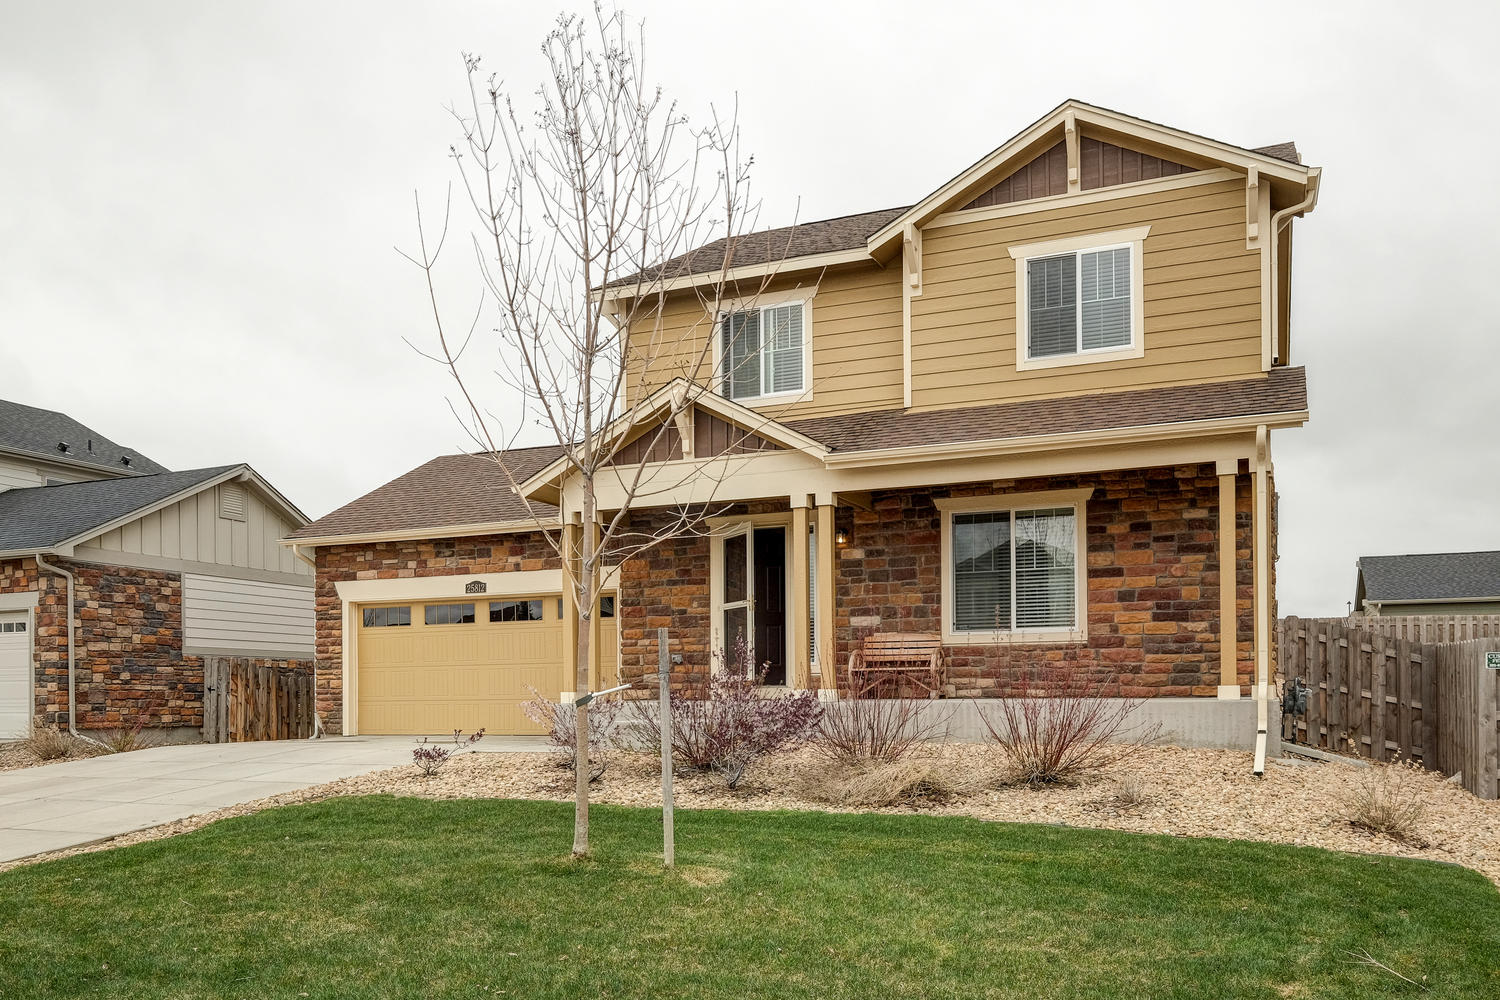 Single Family Home for Sale at Fall in love with this adorable Lennar Home 25812 E Cedar Pl Aurora, Colorado, 80018 United States